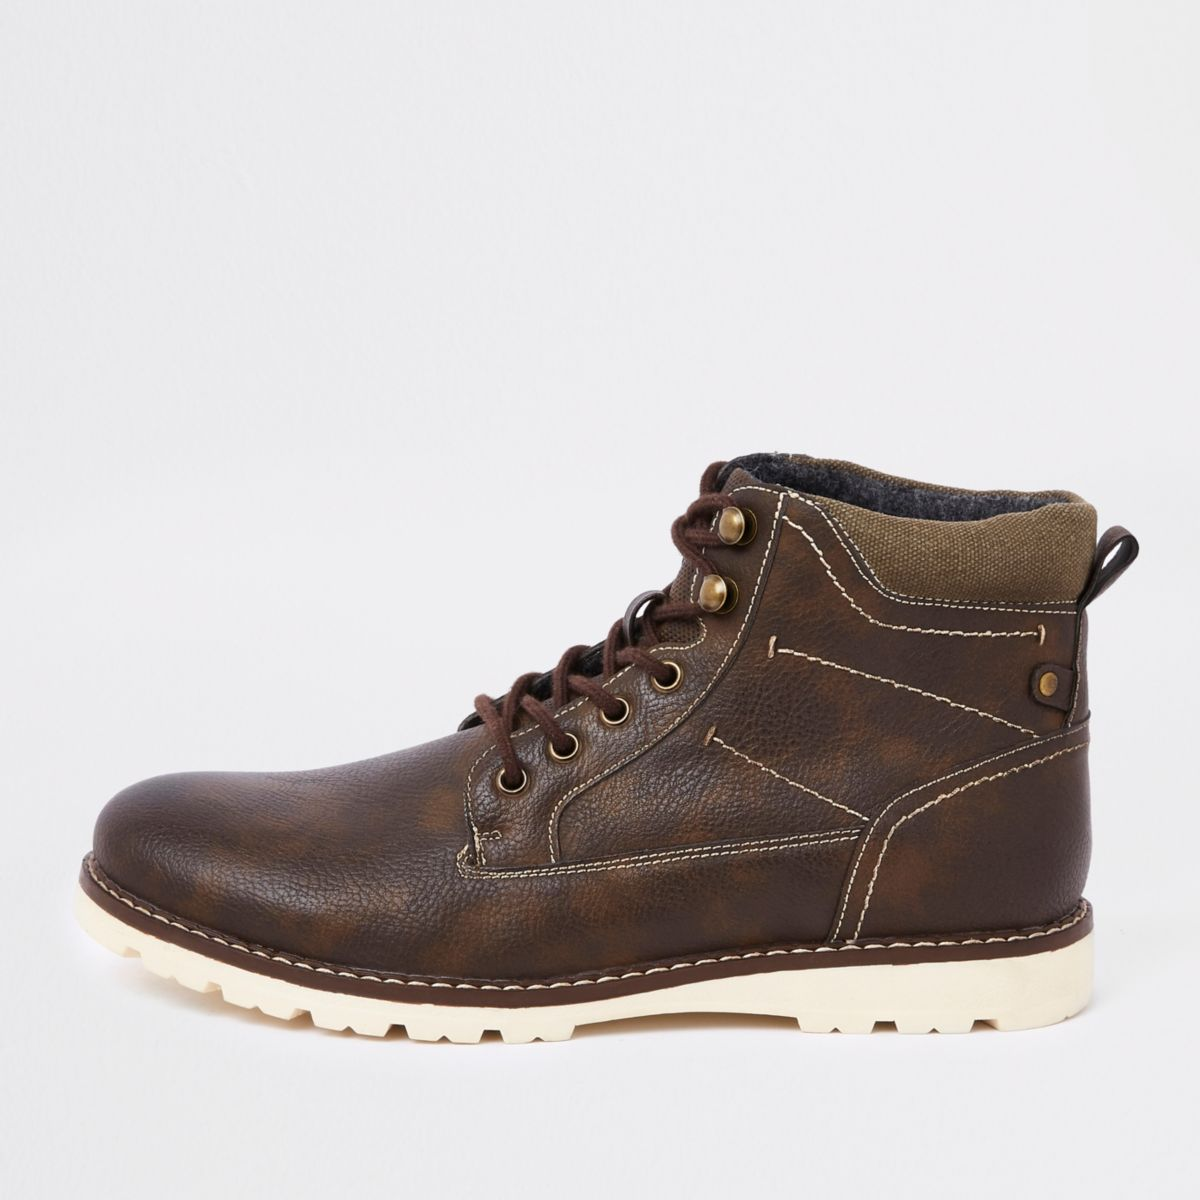 Dark brown faux leather lace-up boots